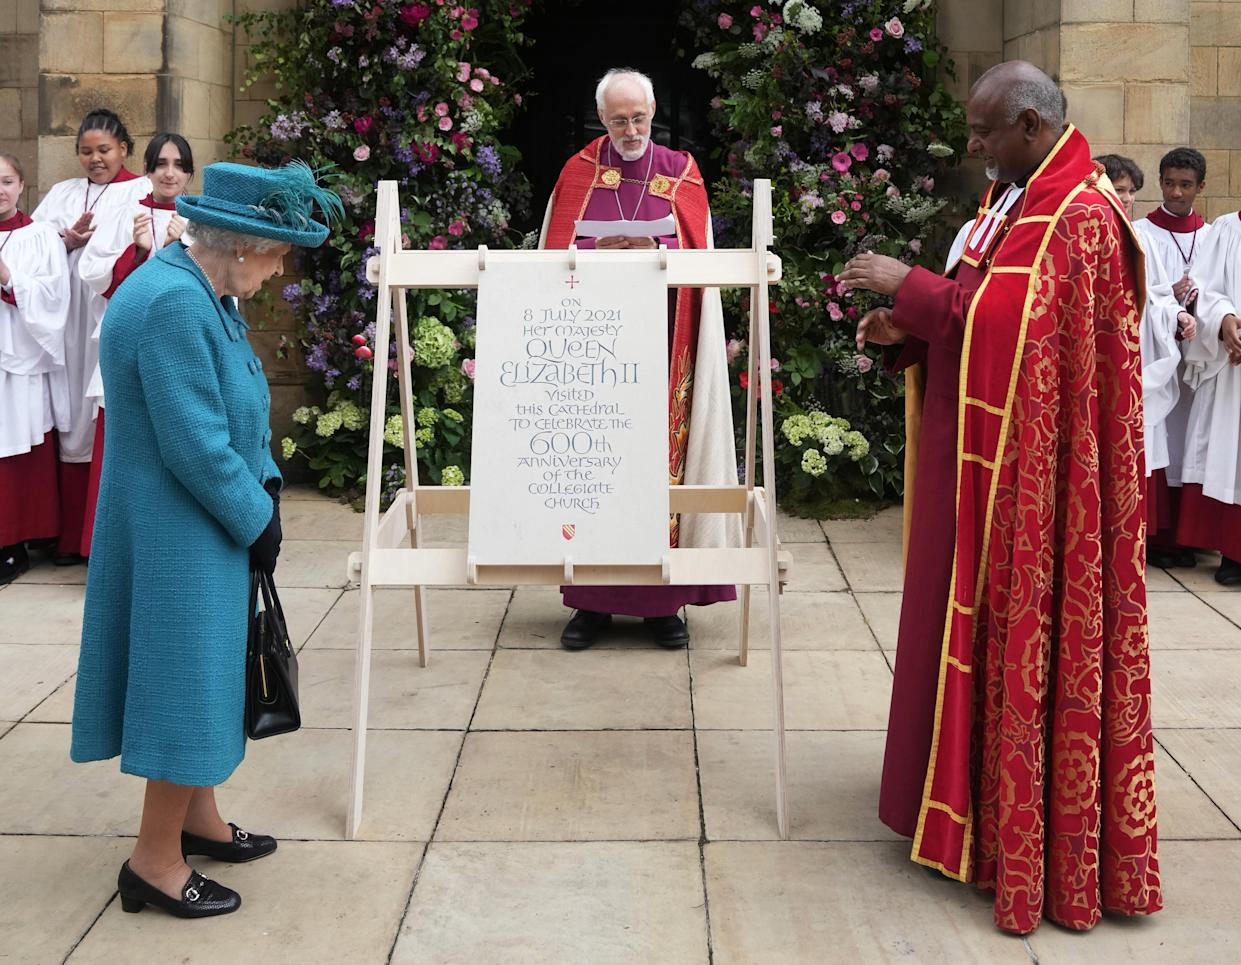 MANCHESTER, ENGLAND - JULY 08: (EDITORS NOTE: This image is a recrop of #1233866709) Queen Elizabeth II is shown a plaque commemorating her visit by Dean of Manchester Cathedral, Rogers Govender at Manchester Cathedral on July 8, 2021 in Manchester, England. (Photo by Christopher Furlong/Getty Images)